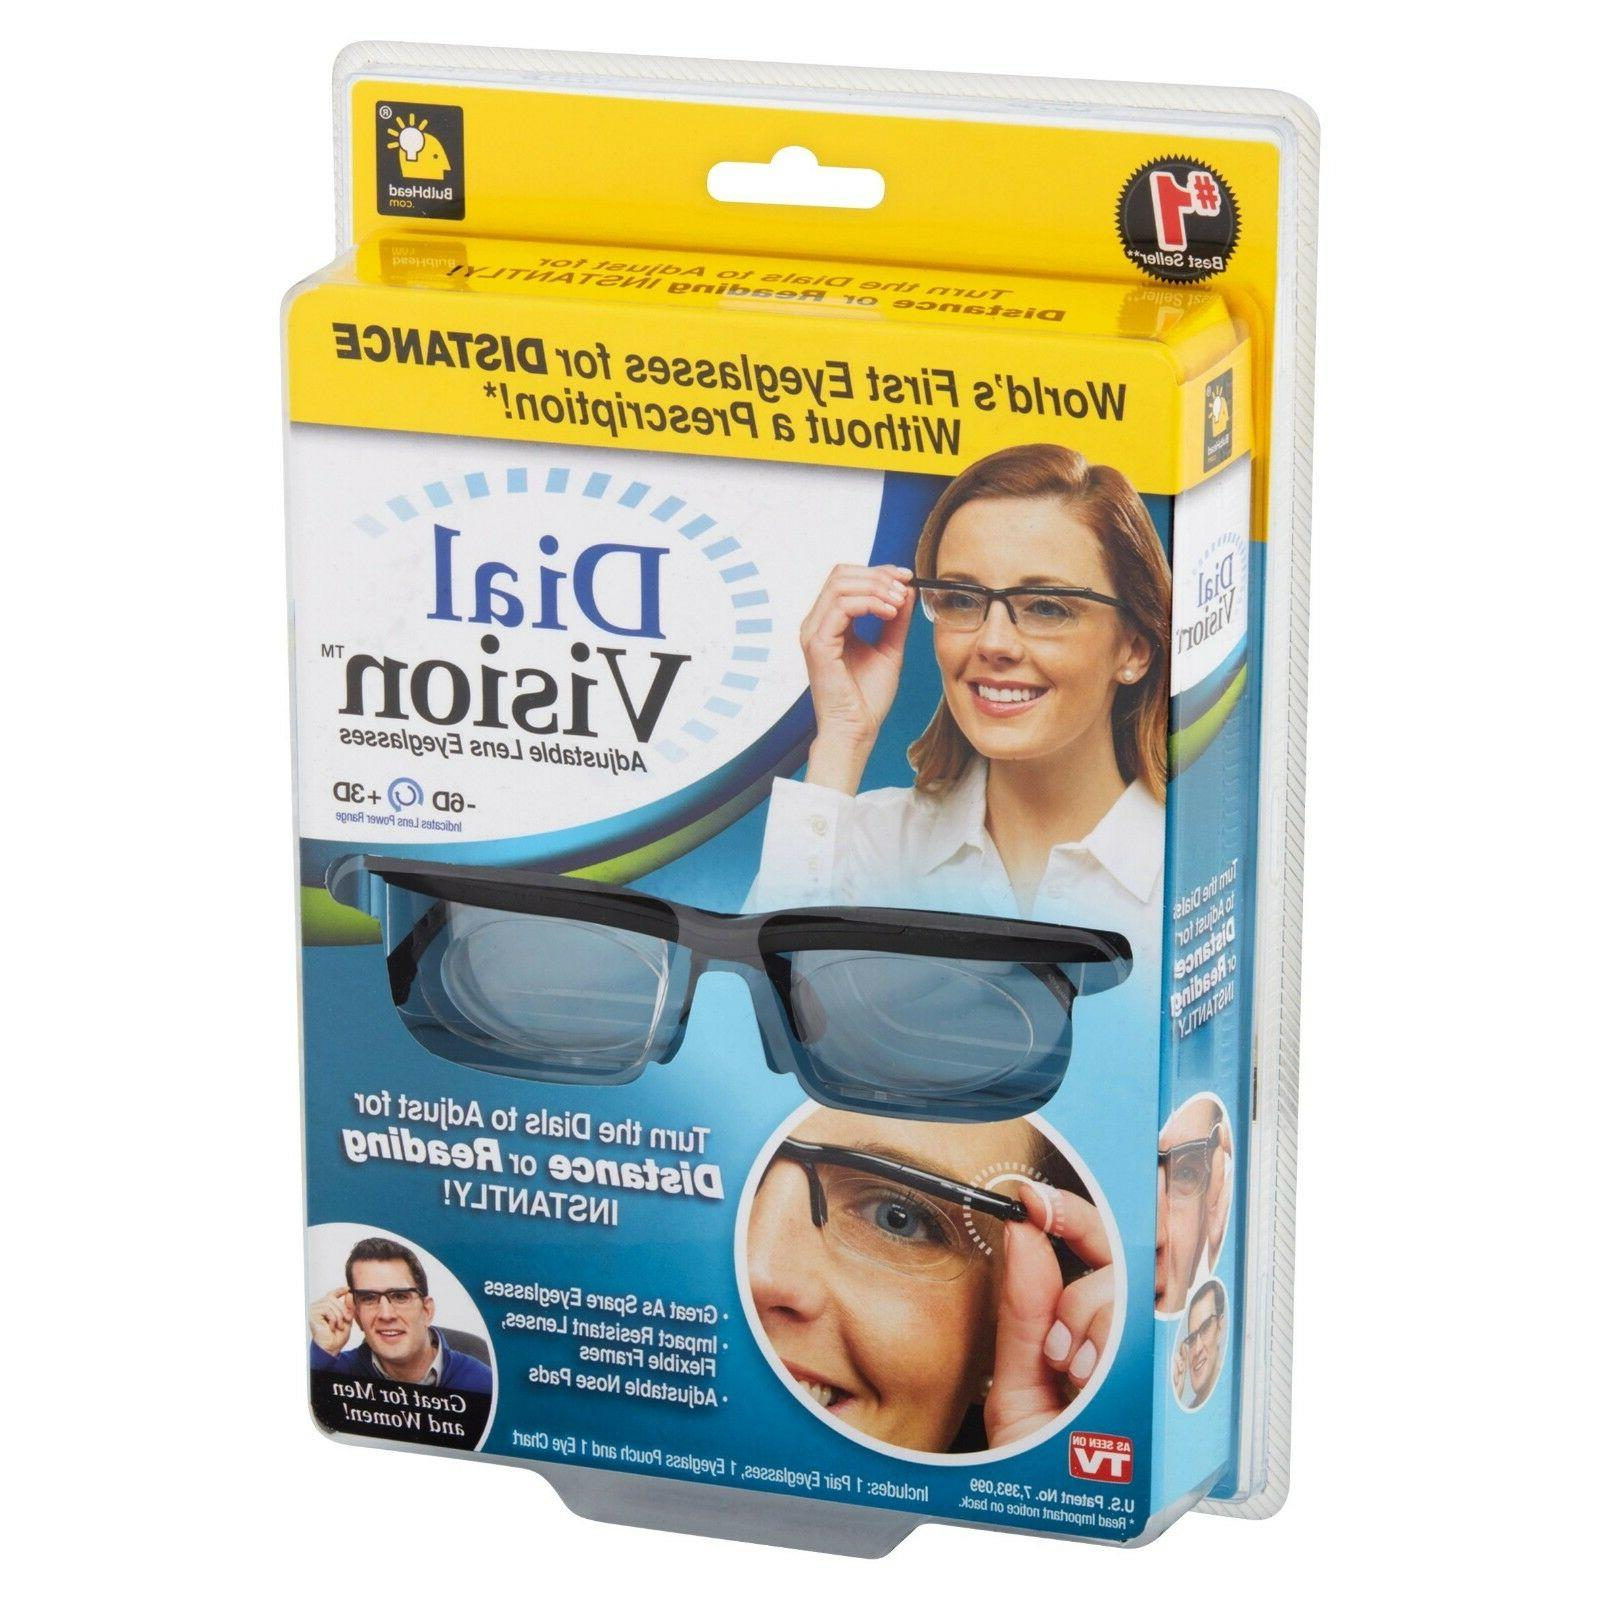 Dial Vision Adjustable Lens Eyeglasses From -6d to 3d Power